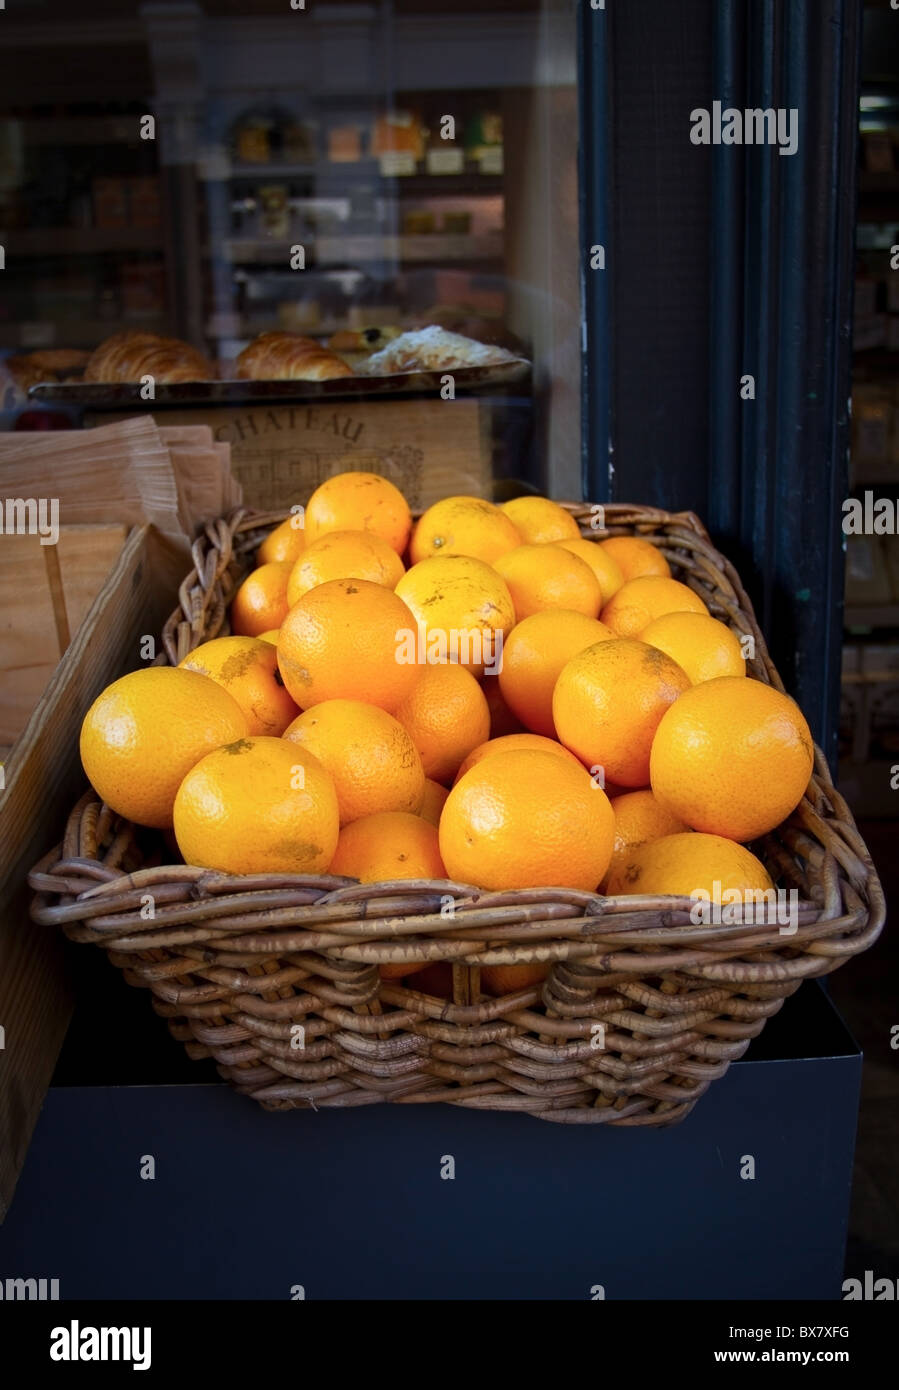 Basket of oranges in shop window stall - Stock Image